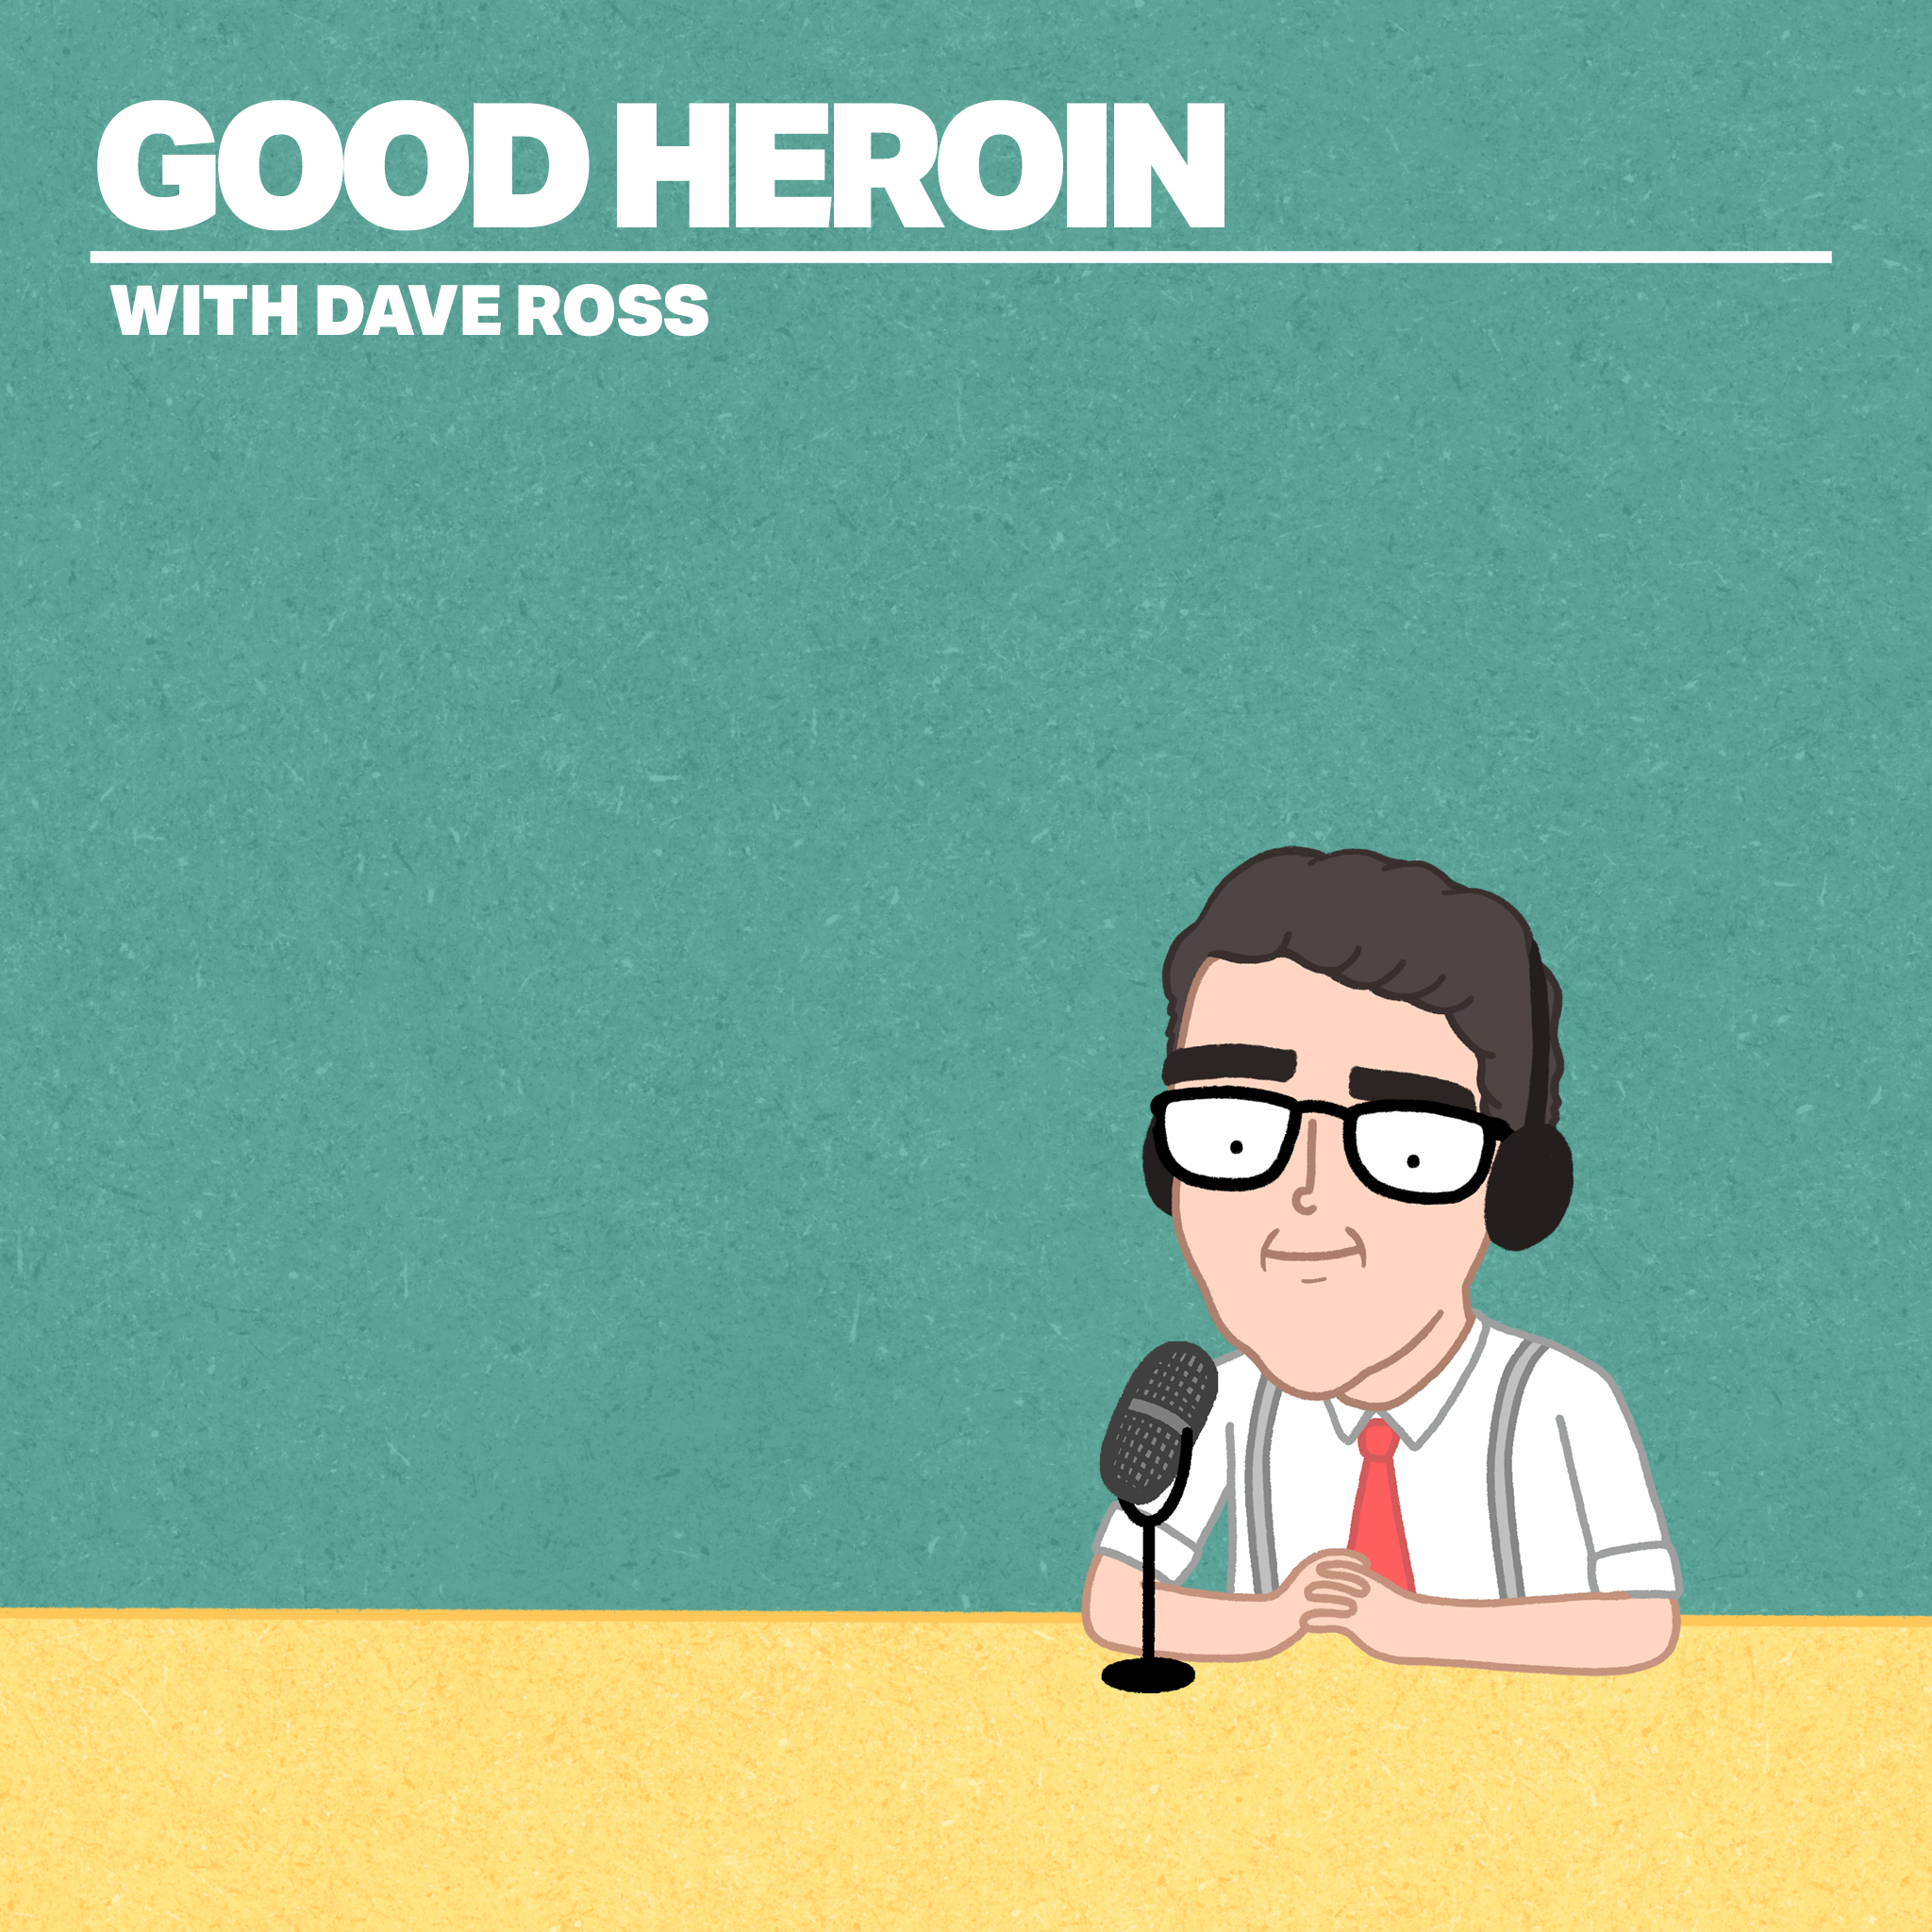 Good Heroin Podcast Cover - Square